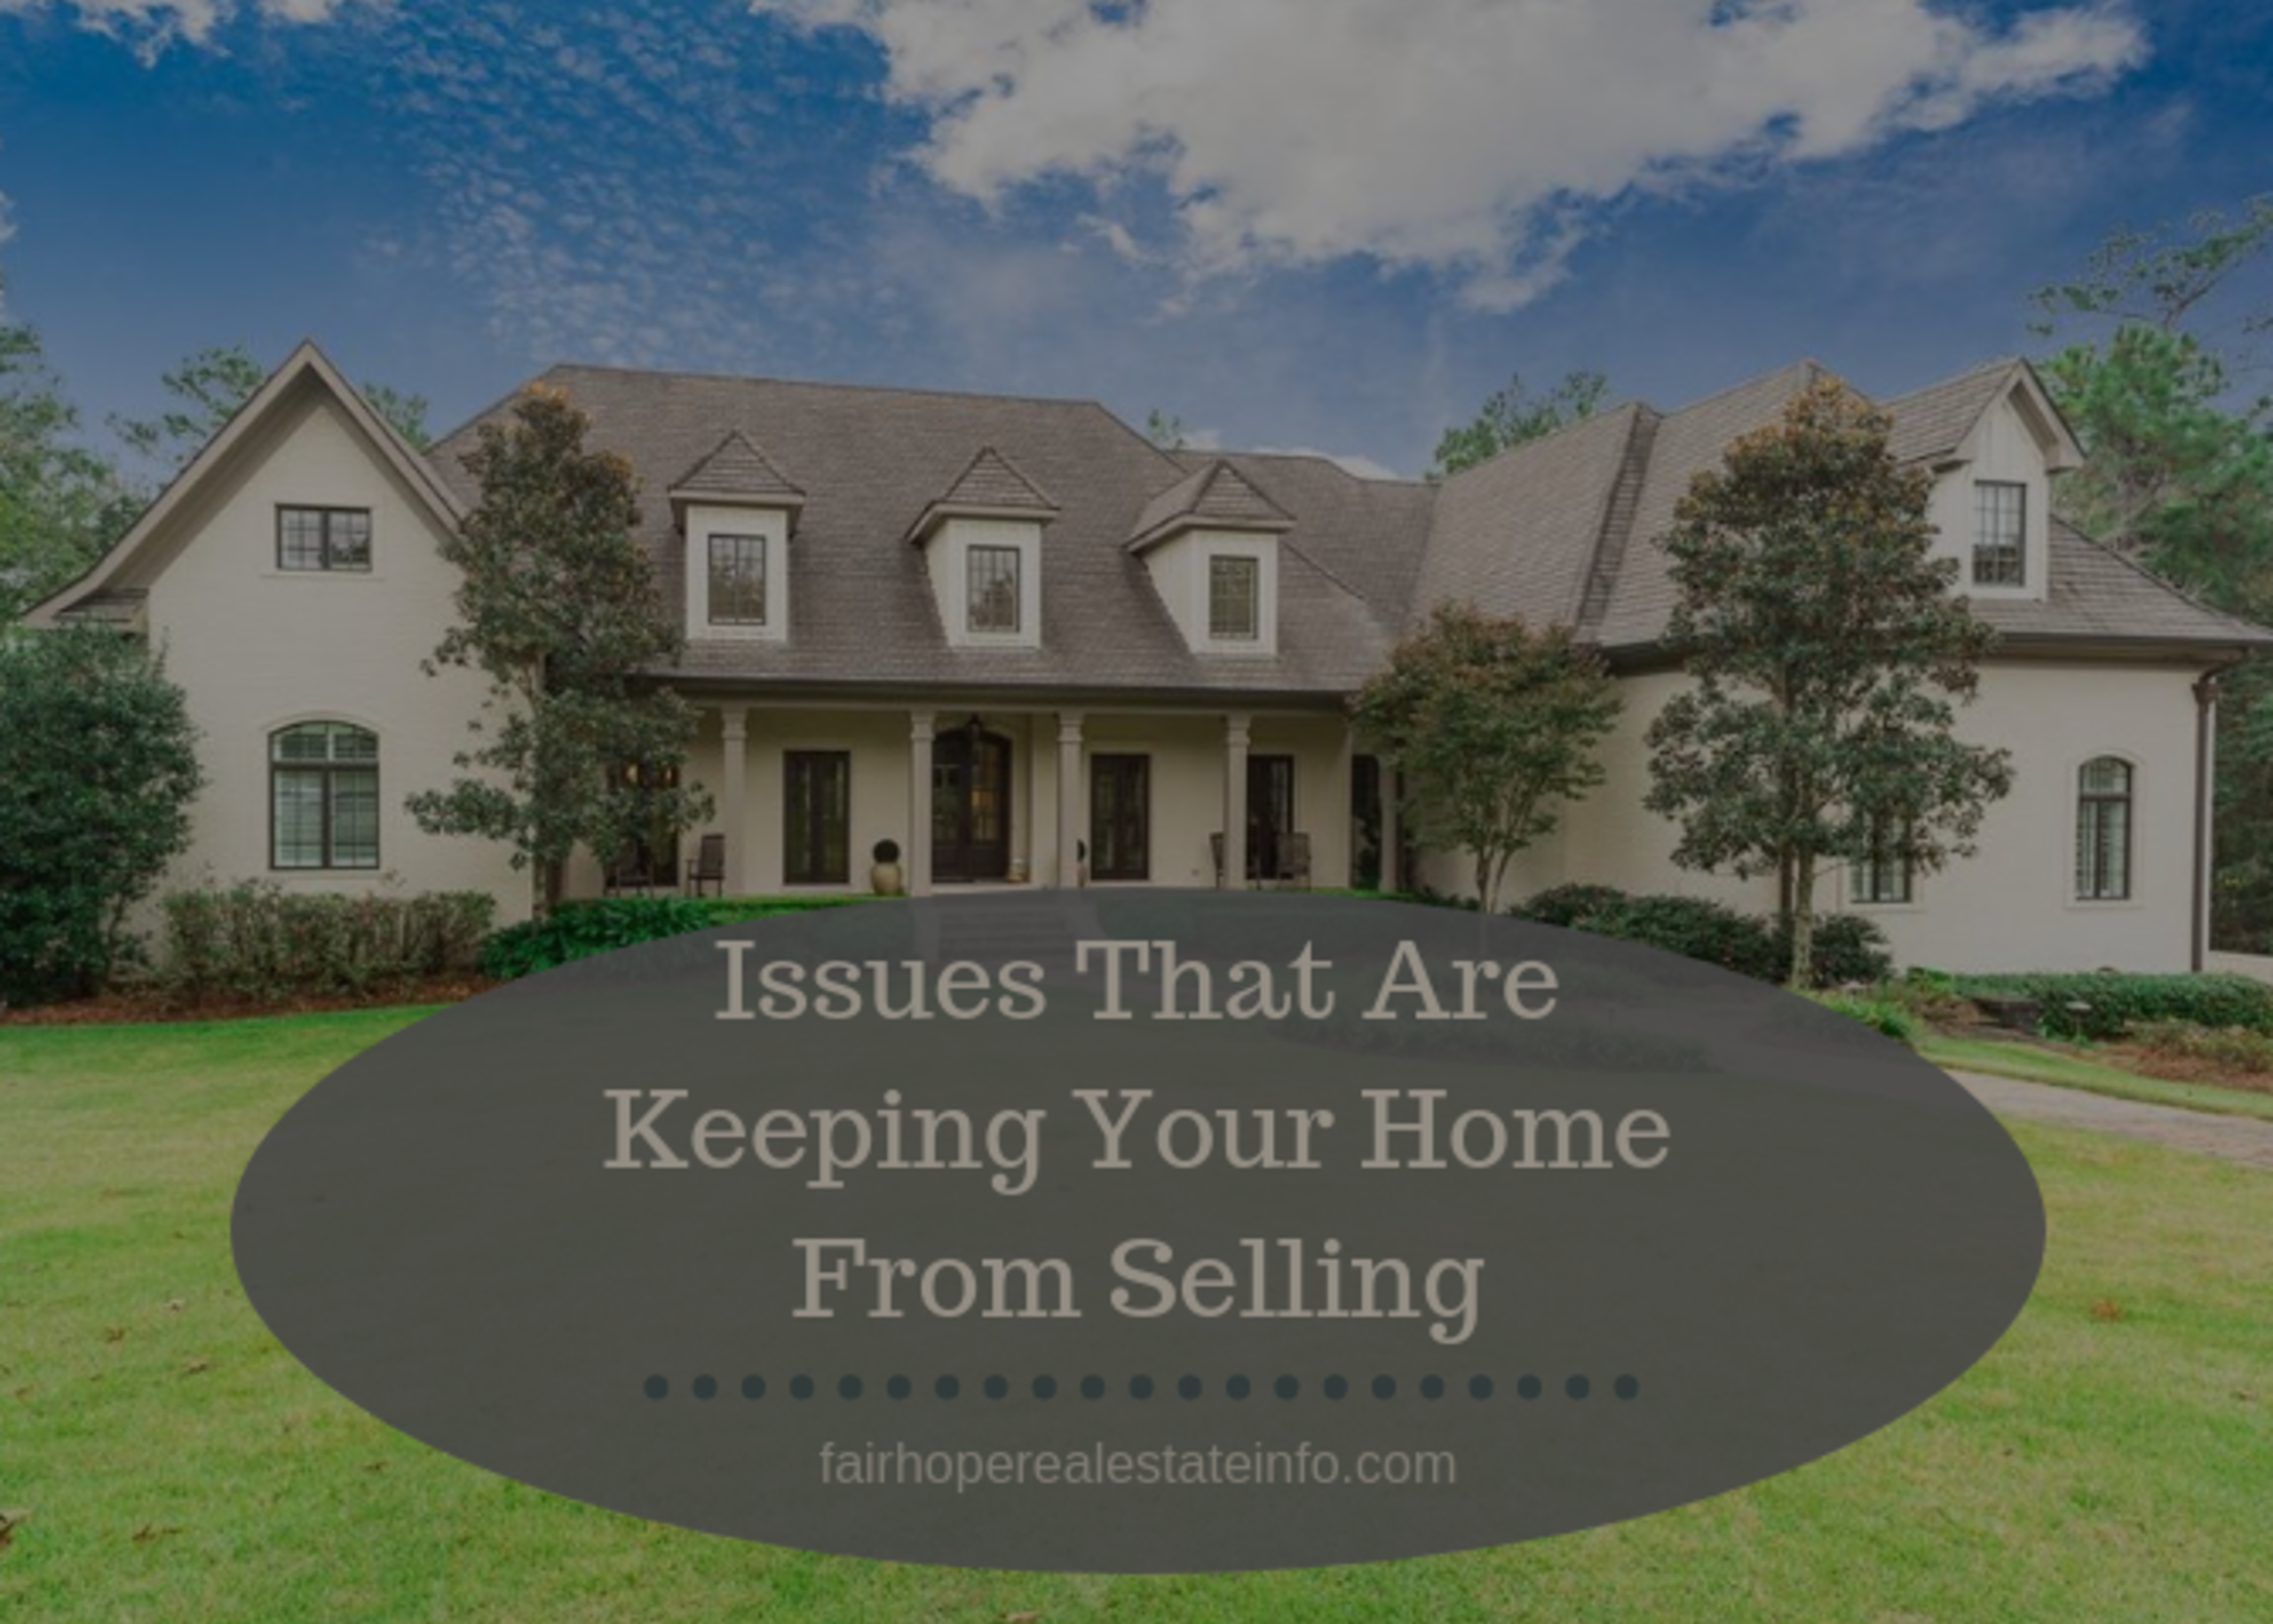 Issues That Are Keeping Your Home From Selling